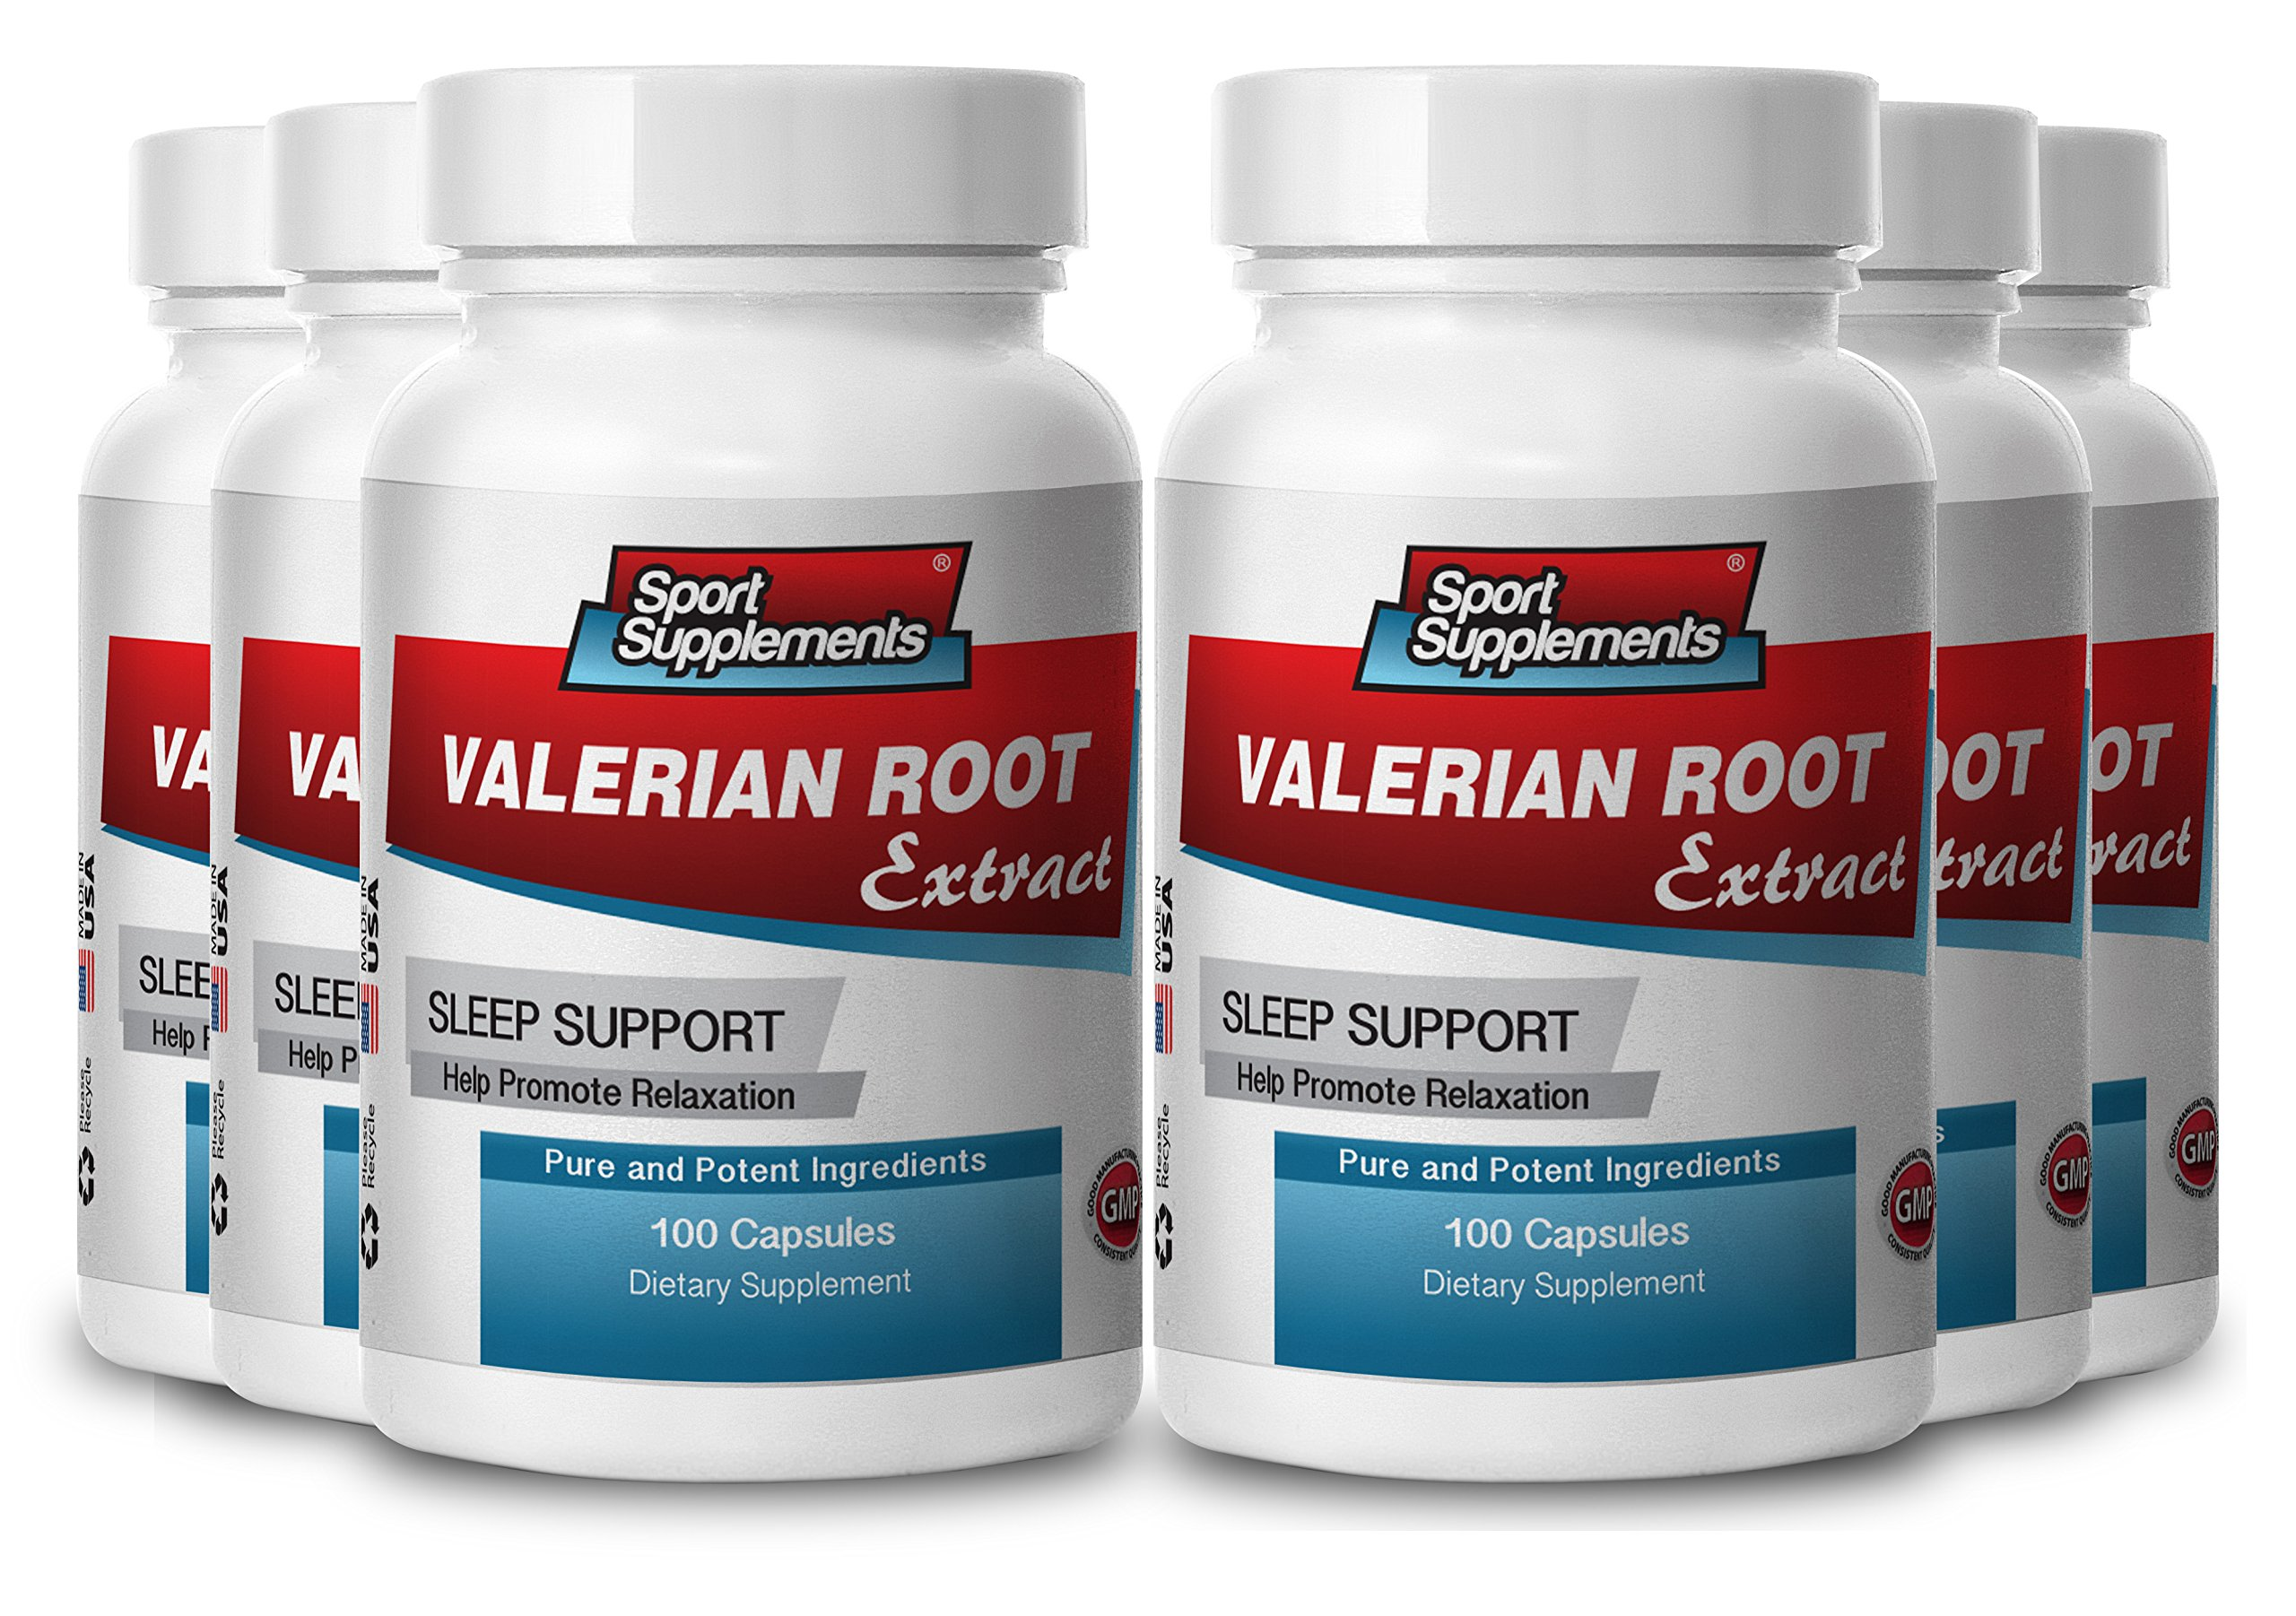 valerian root bulk - Valerian Root Extract 4:1 125mg - Natural Sleepping Supplement with Valerian Root Extract (6 bottles 600 capsules)